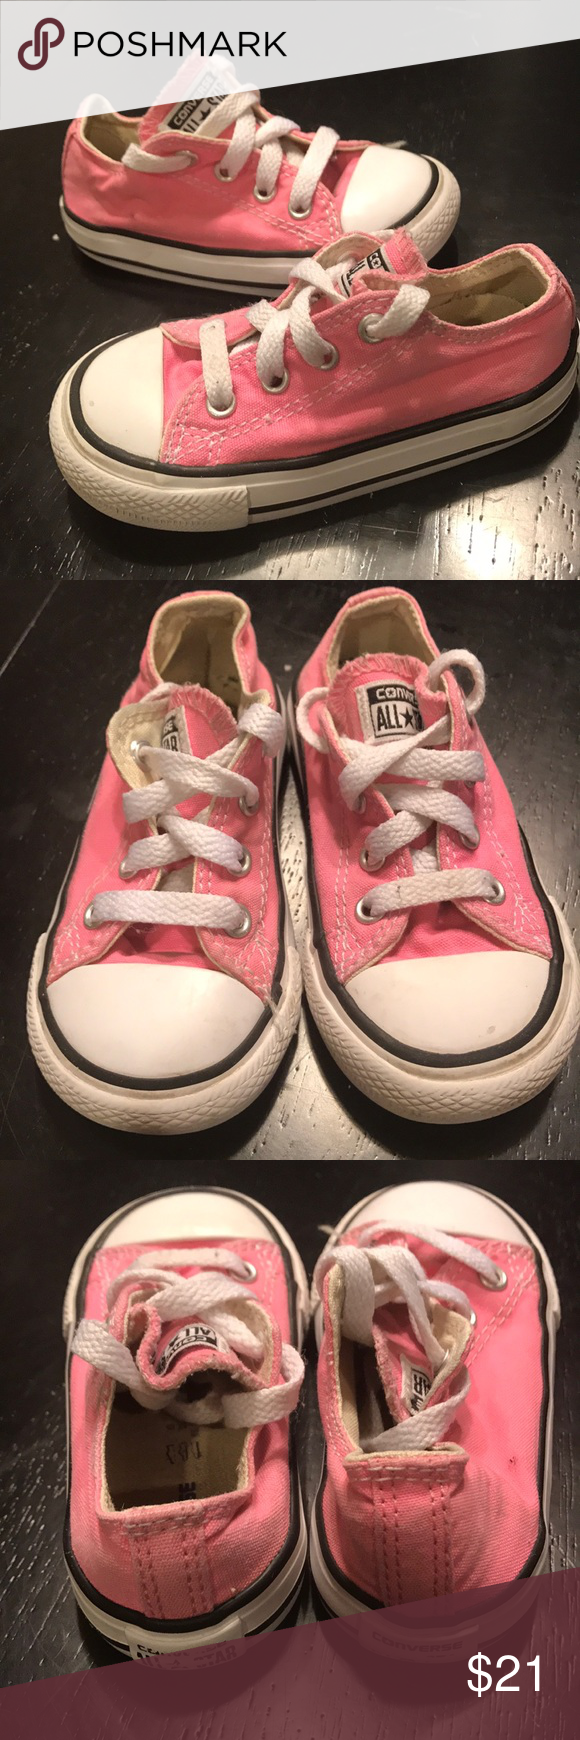 6fcfb908e334 Pink converse size 6 💕. Pink ConverseConverse ShoesShoes SneakersToddler  ...